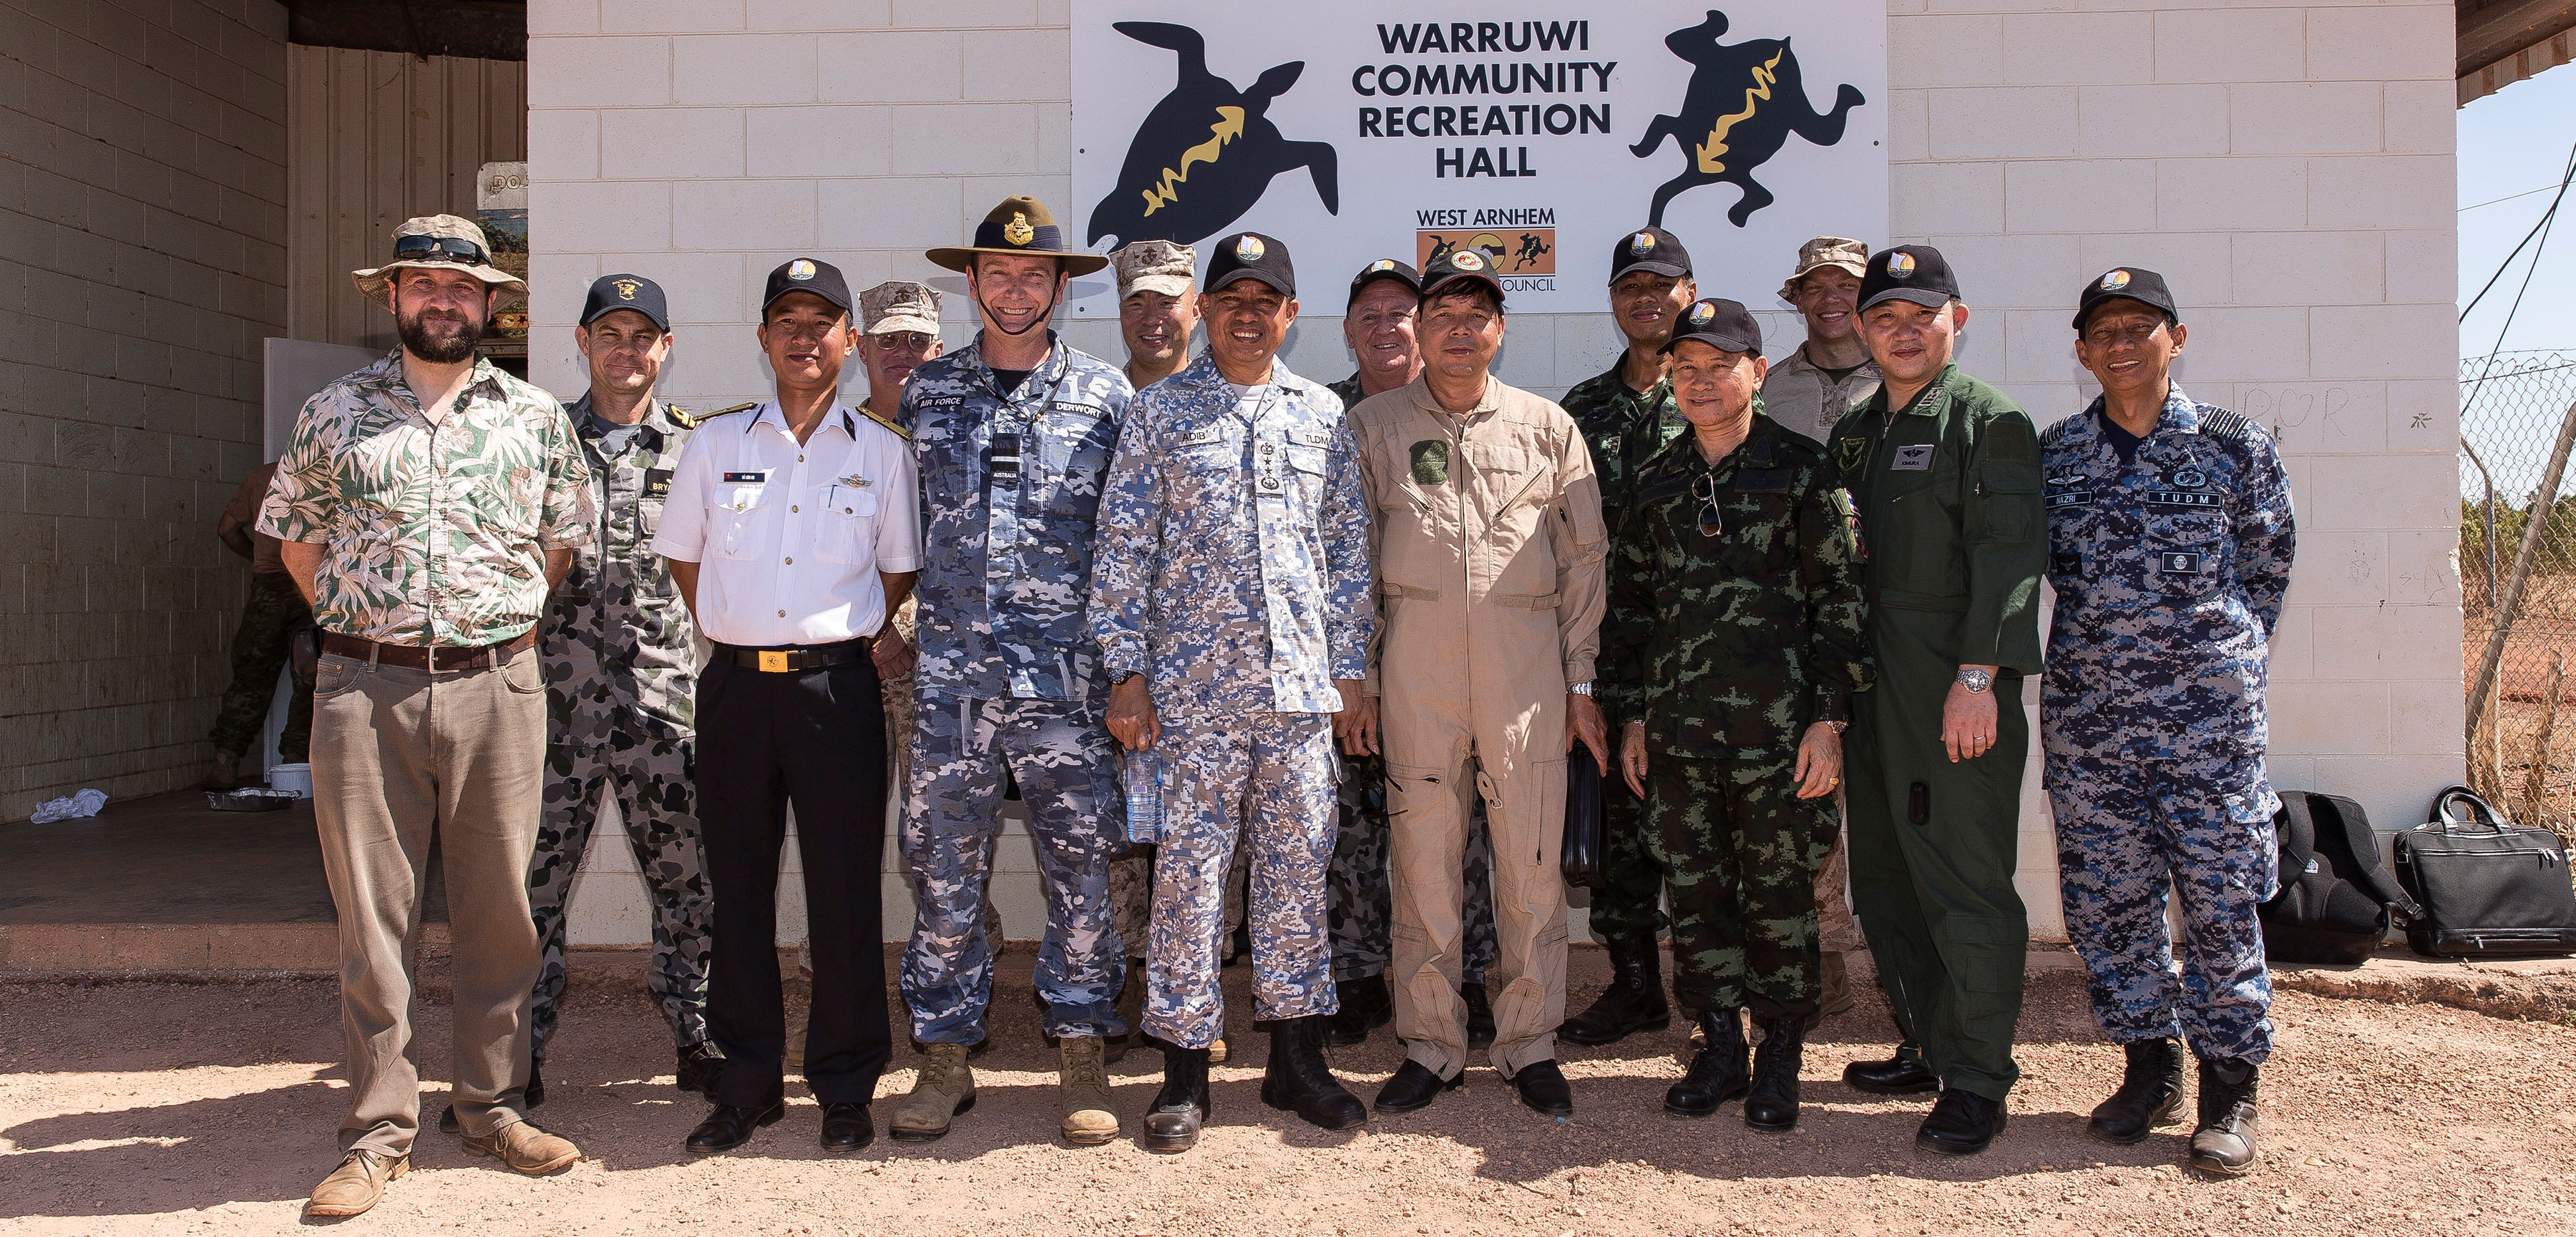 International observers and Lowy Institute International Security Program Director Euan Graham (far left) at Warrawui for Exercise Crocodile Strike (Photo: Commonwealth of Australia/Department of Defence)